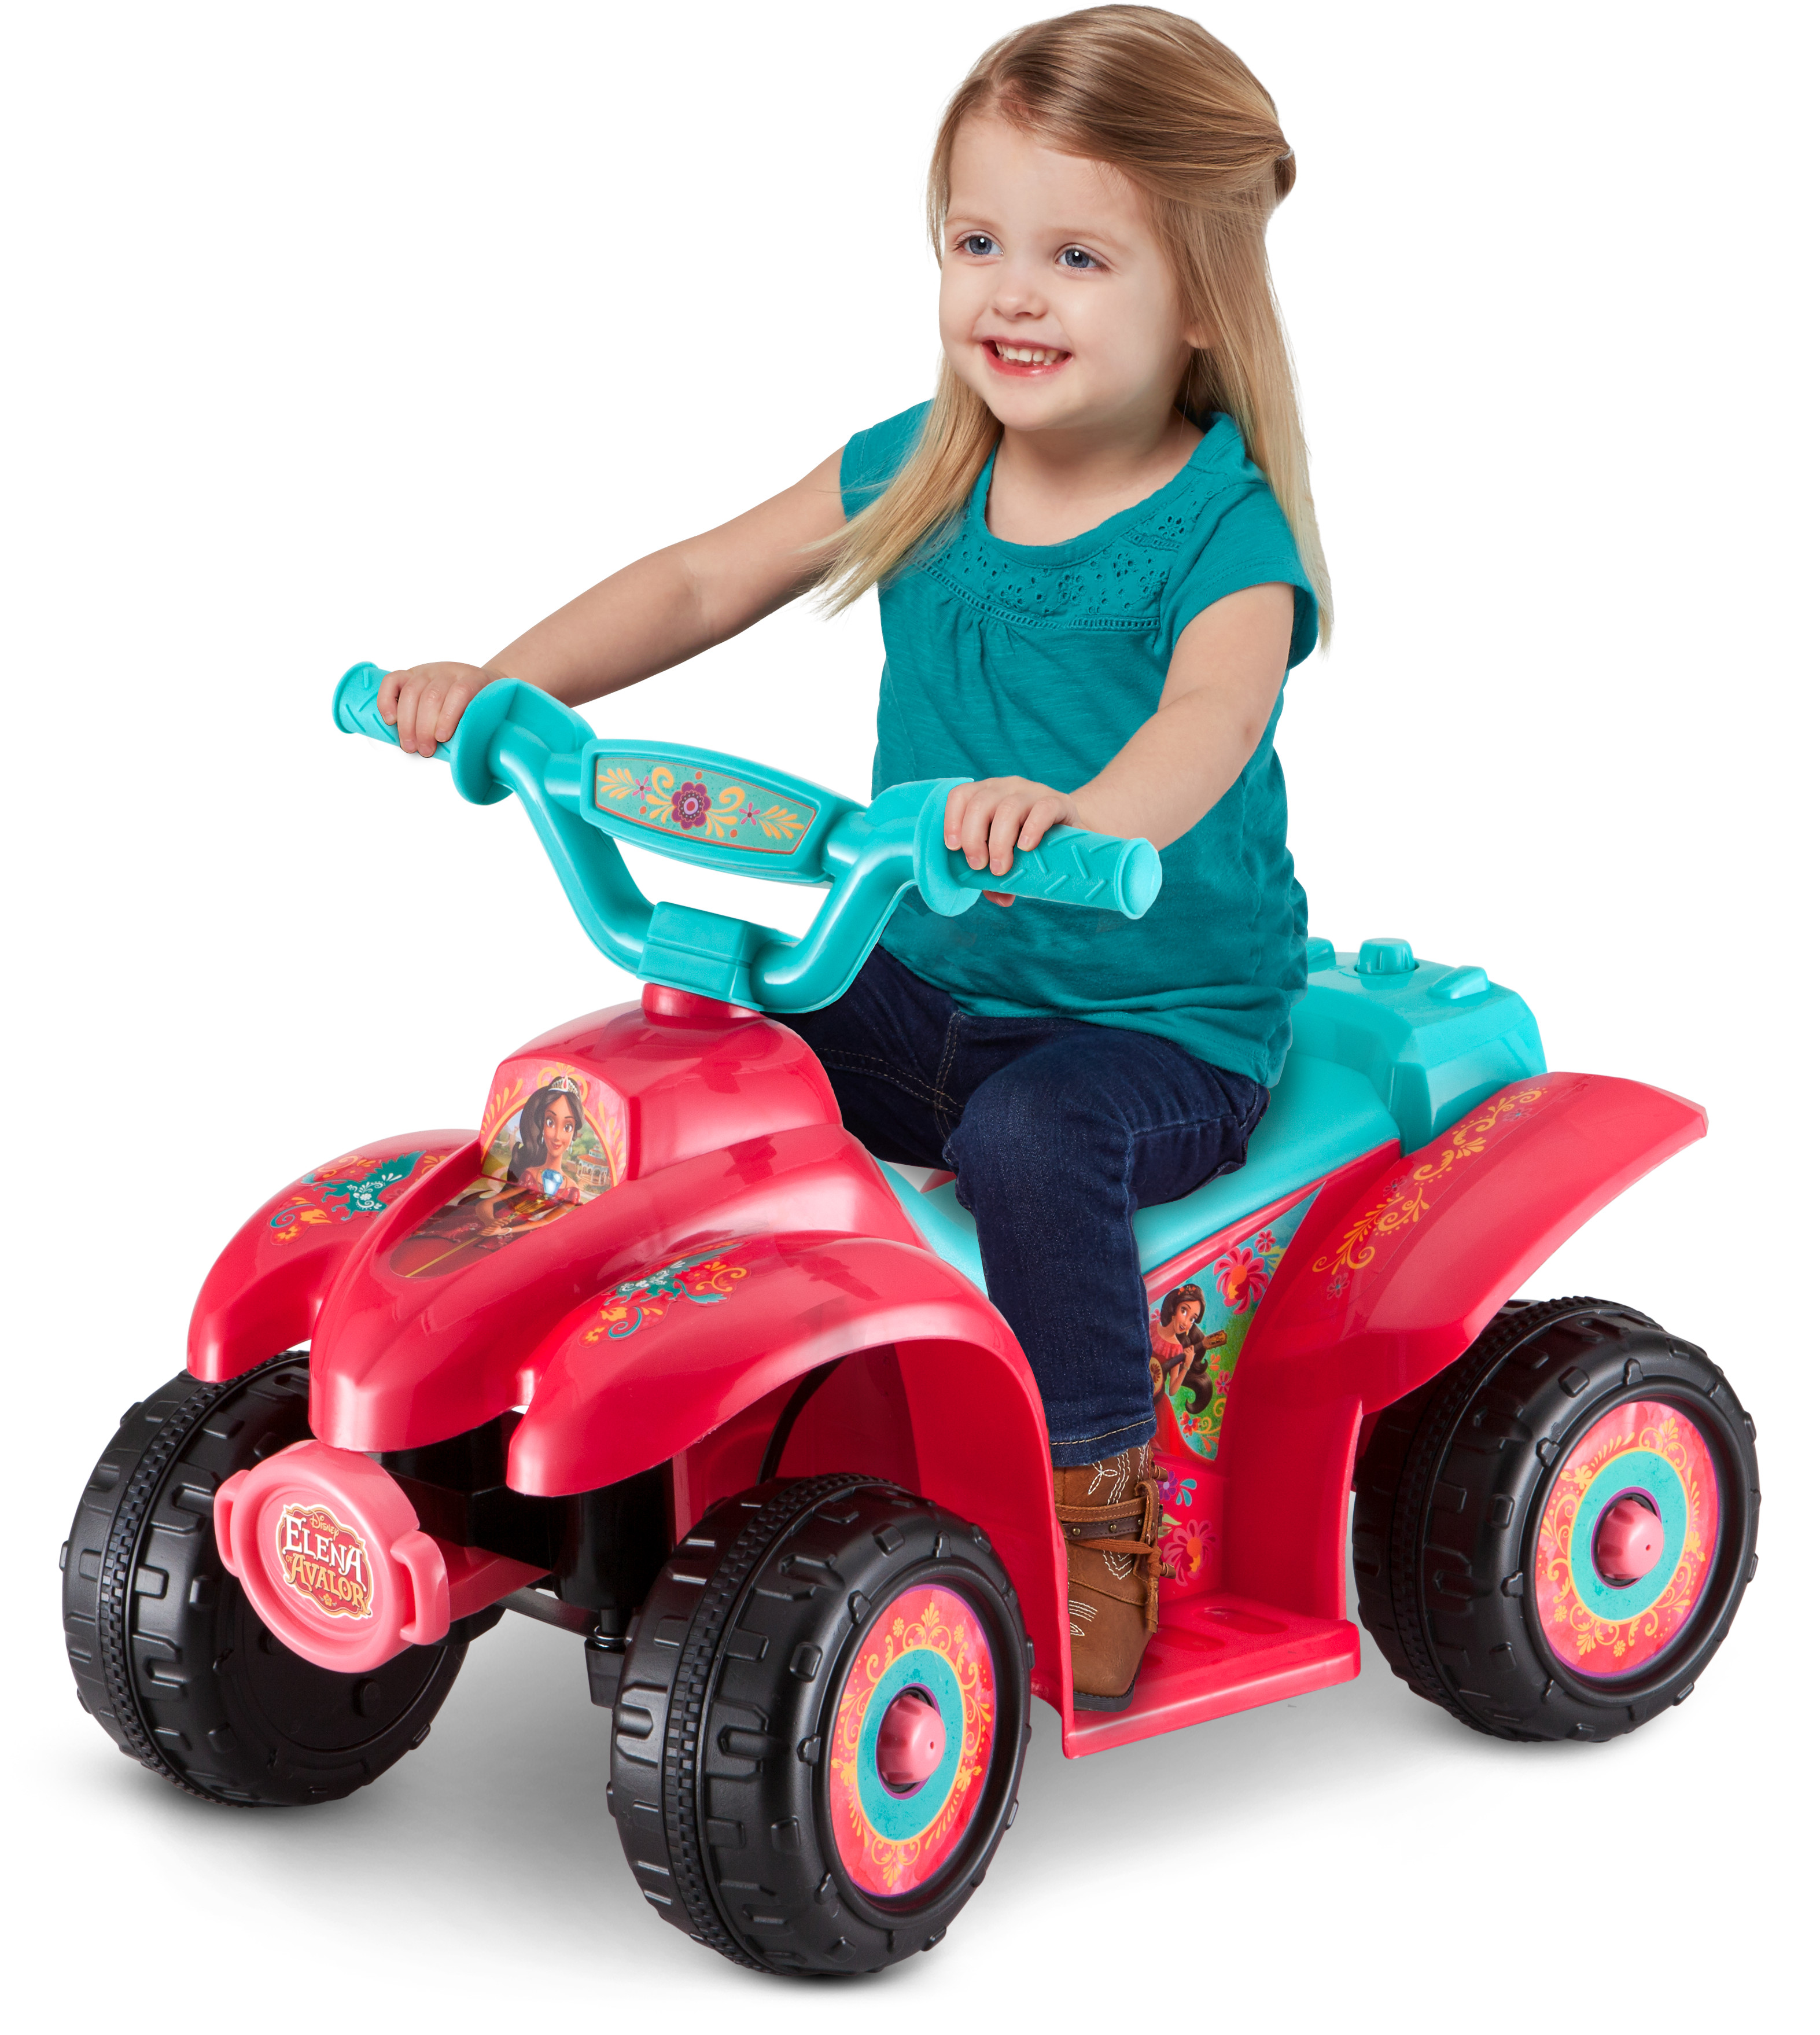 Disney Elena of Avalor 6V Battery Powered Ride-On Quad